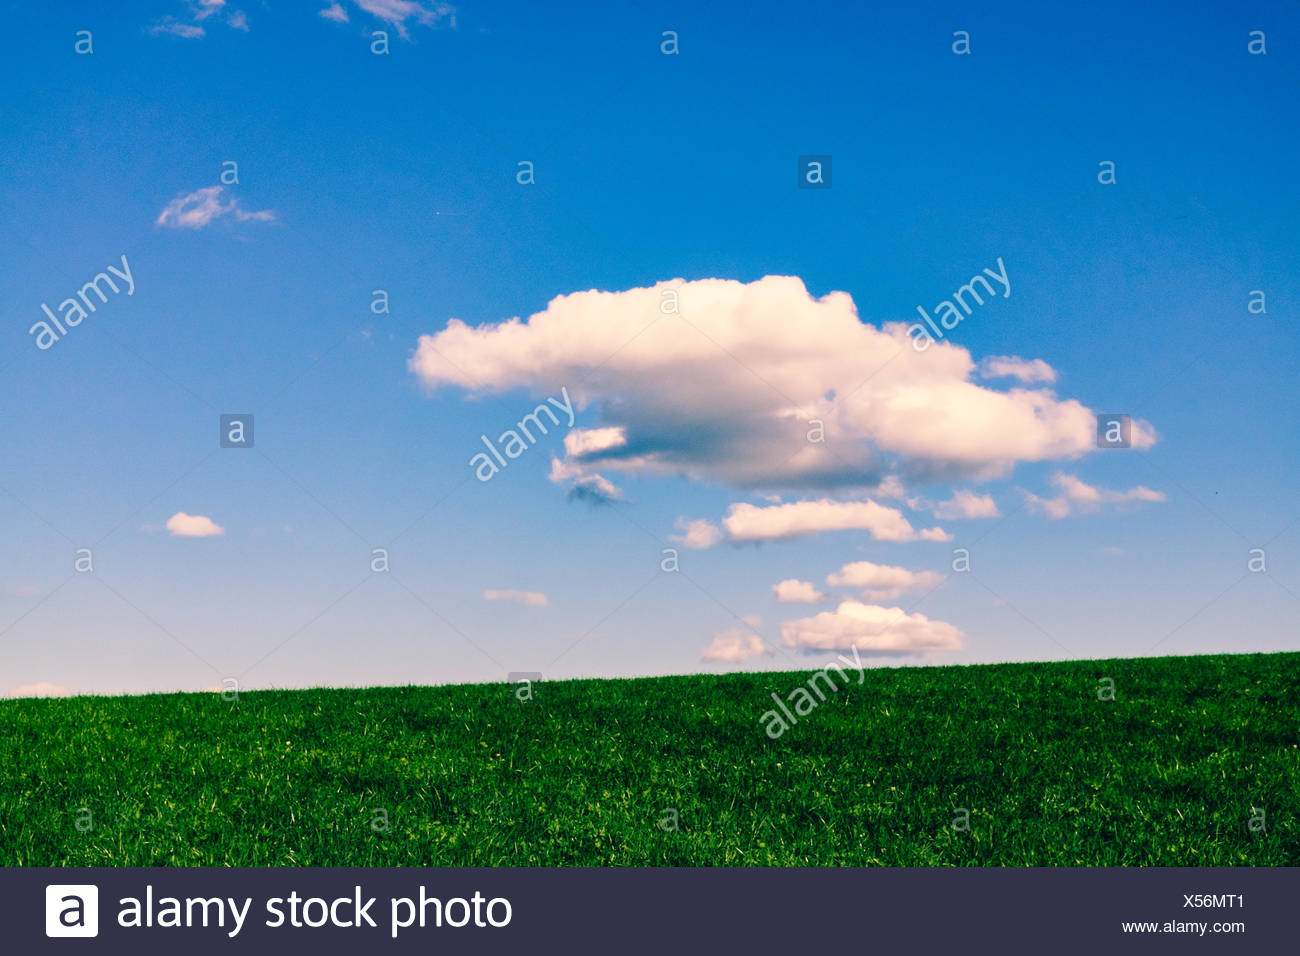 Idyllic View Of Grassy Landscape Against Sky - Stock Image